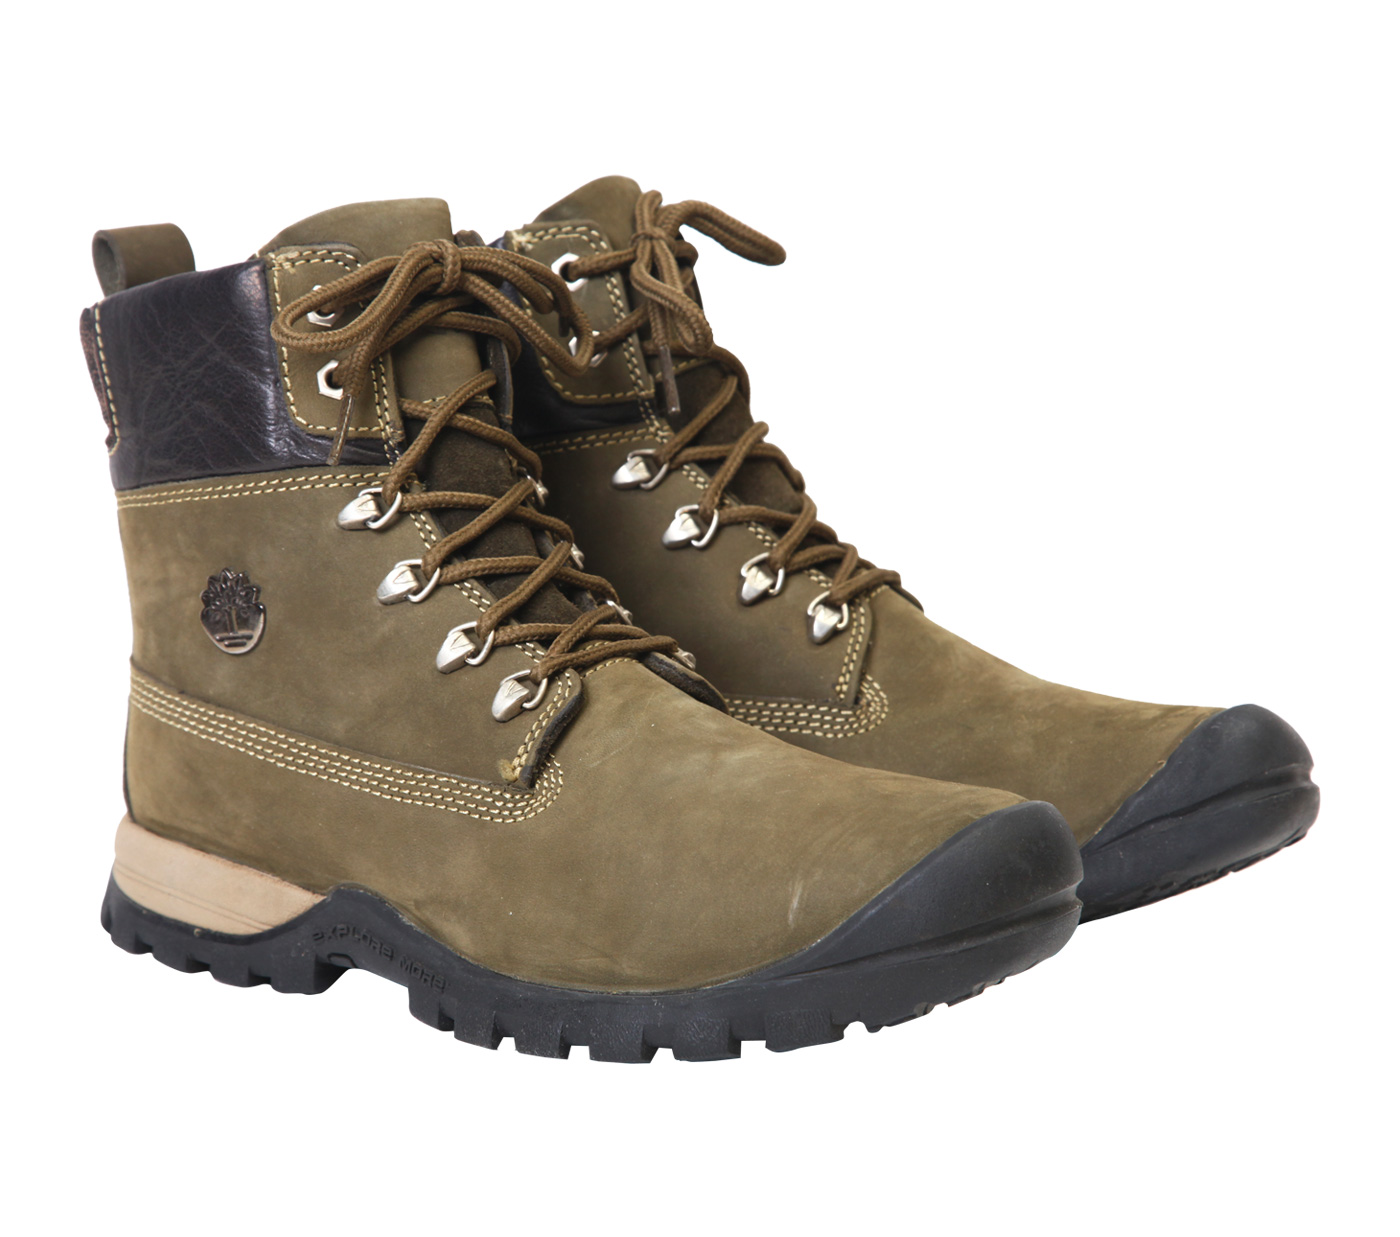 Woodland original: Why Hiking Boots on a Hike!!!